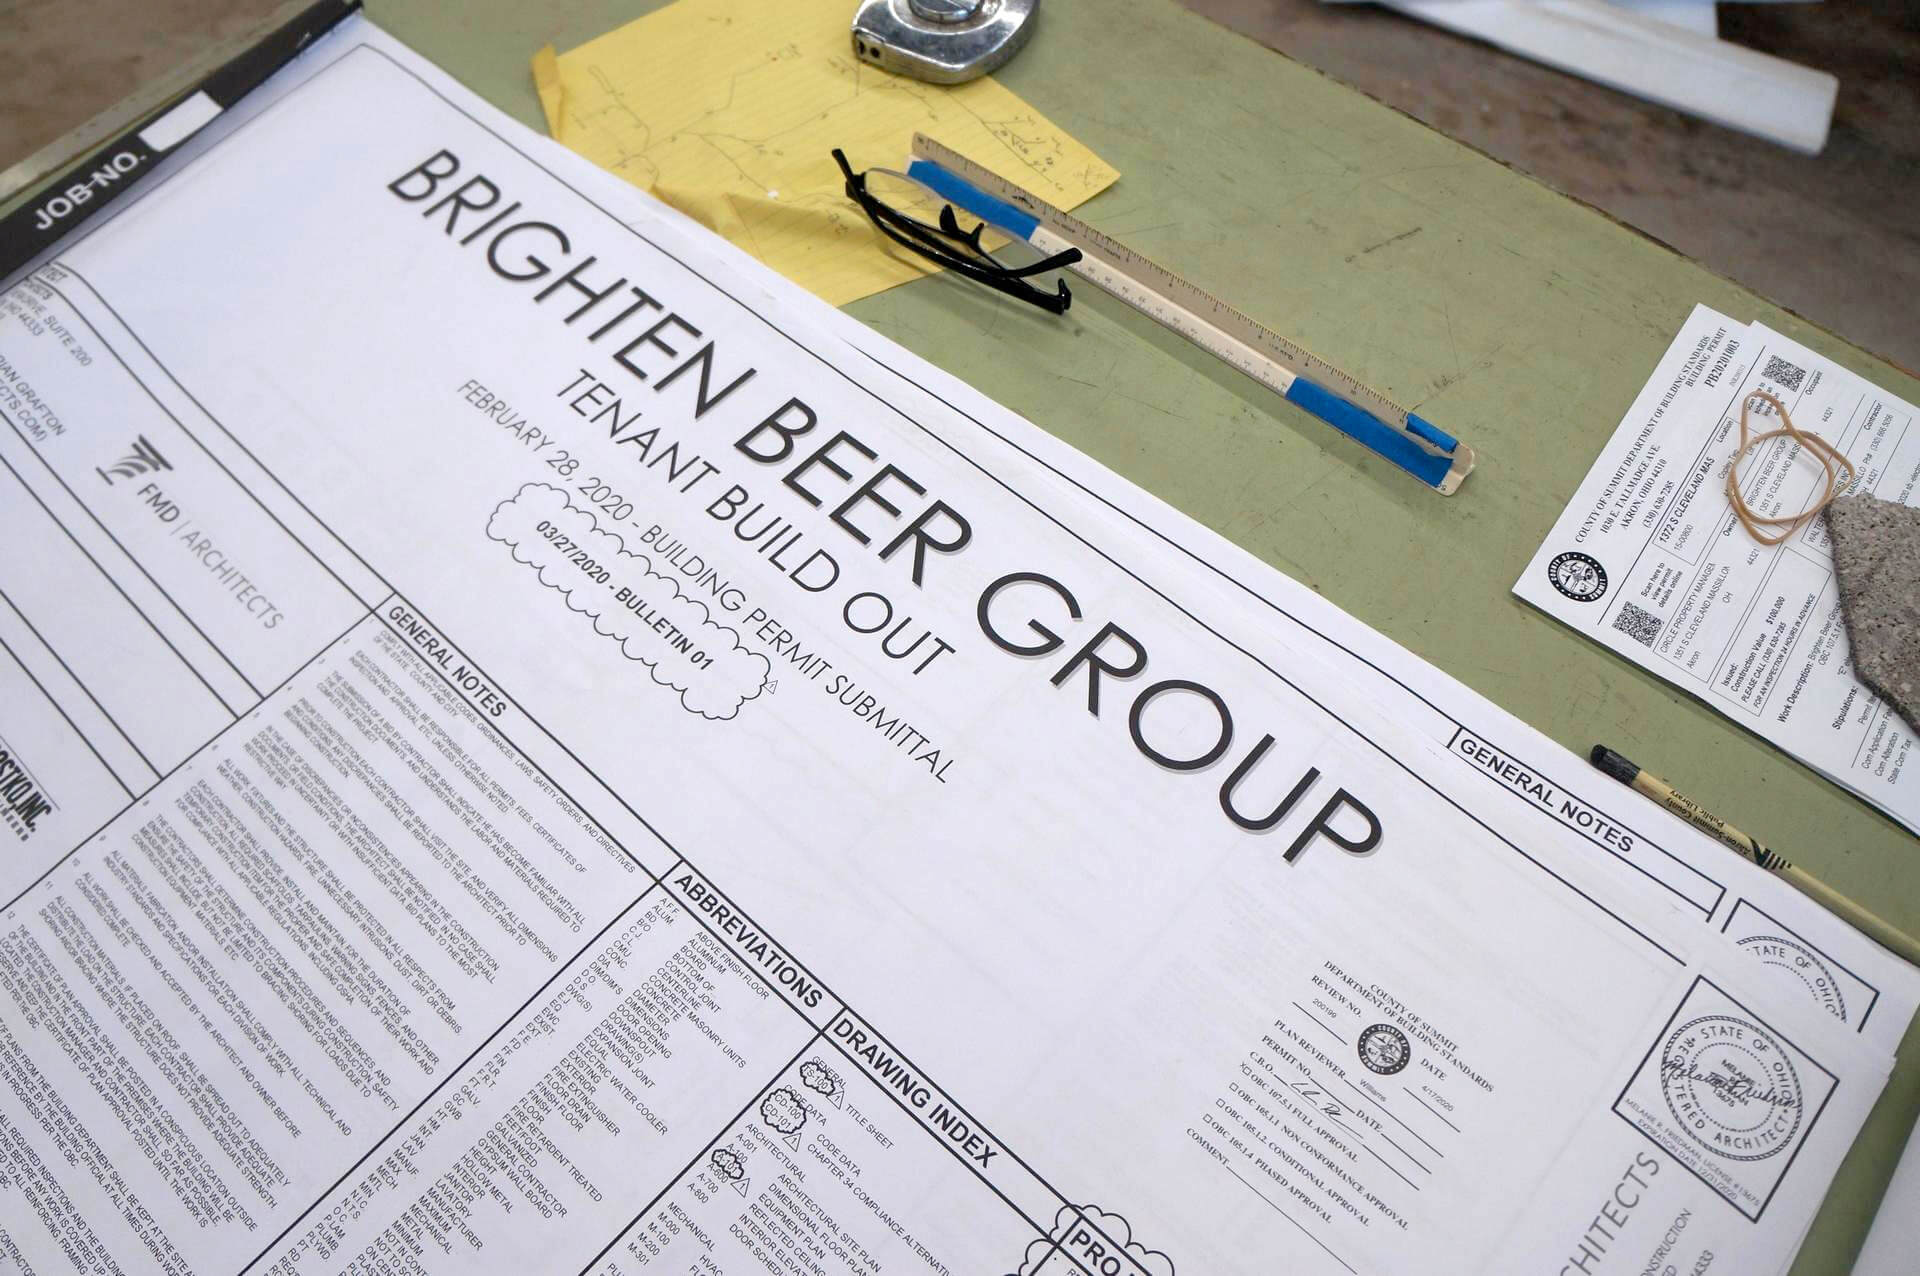 Brighten Brewing is under construction on Cleveland Massillon Road in Copley Township. [Rick Armon/CantonRep.com]